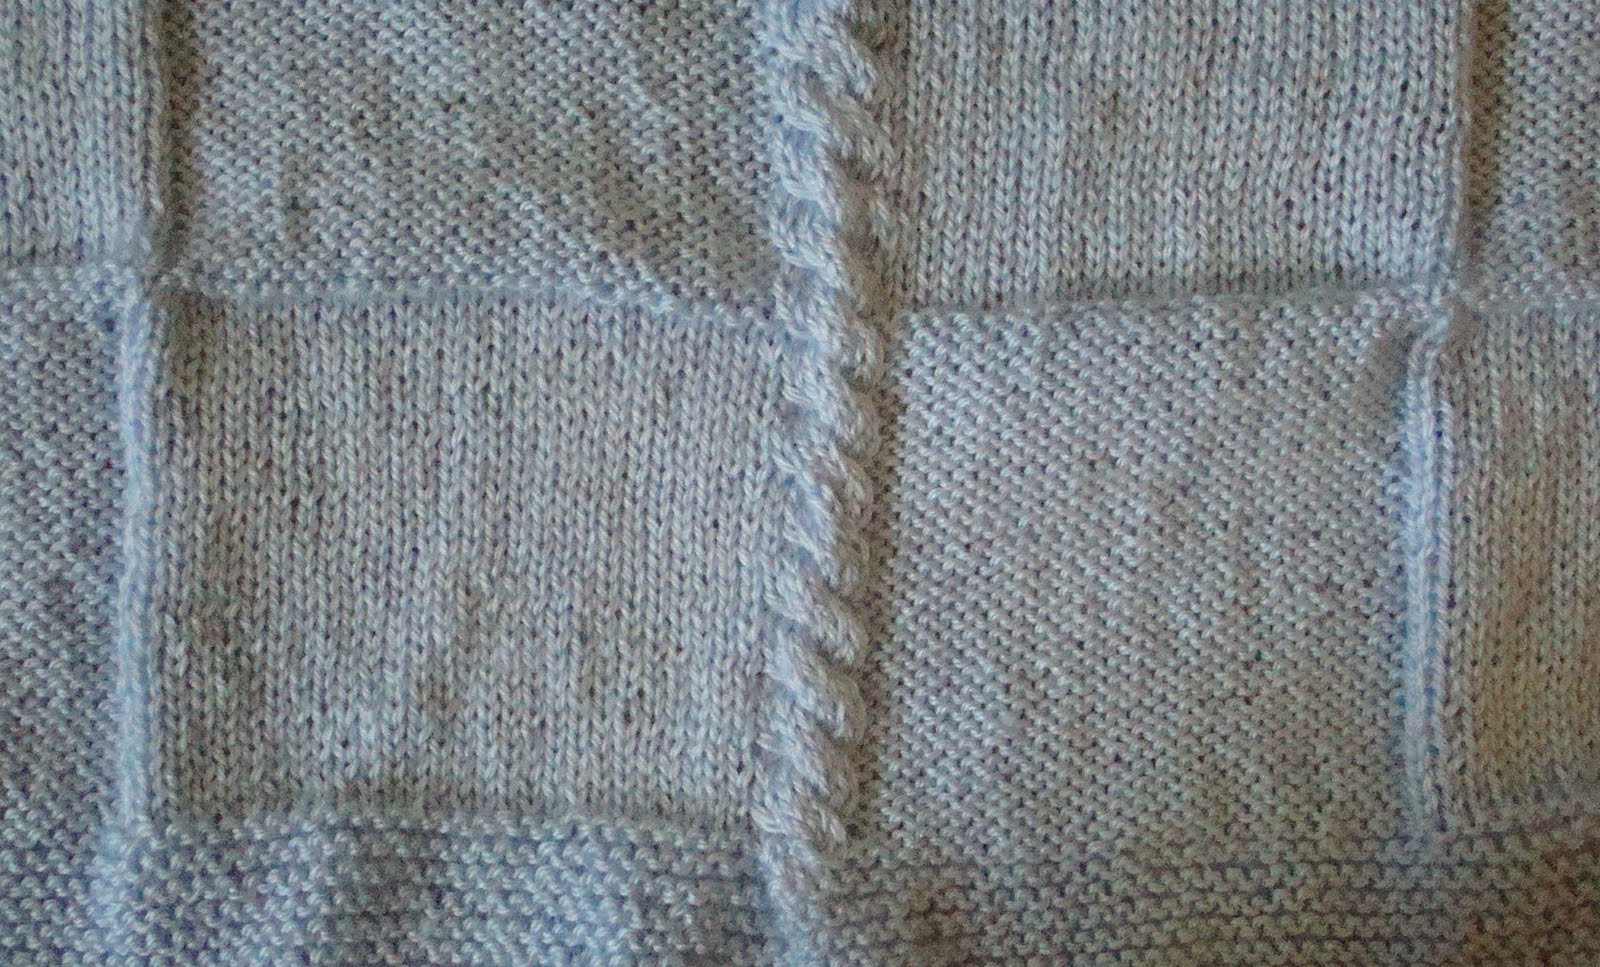 Knitting Patterns For Squares : Crafts By Starlight: Knit Baby Blanket - Squares and Cords